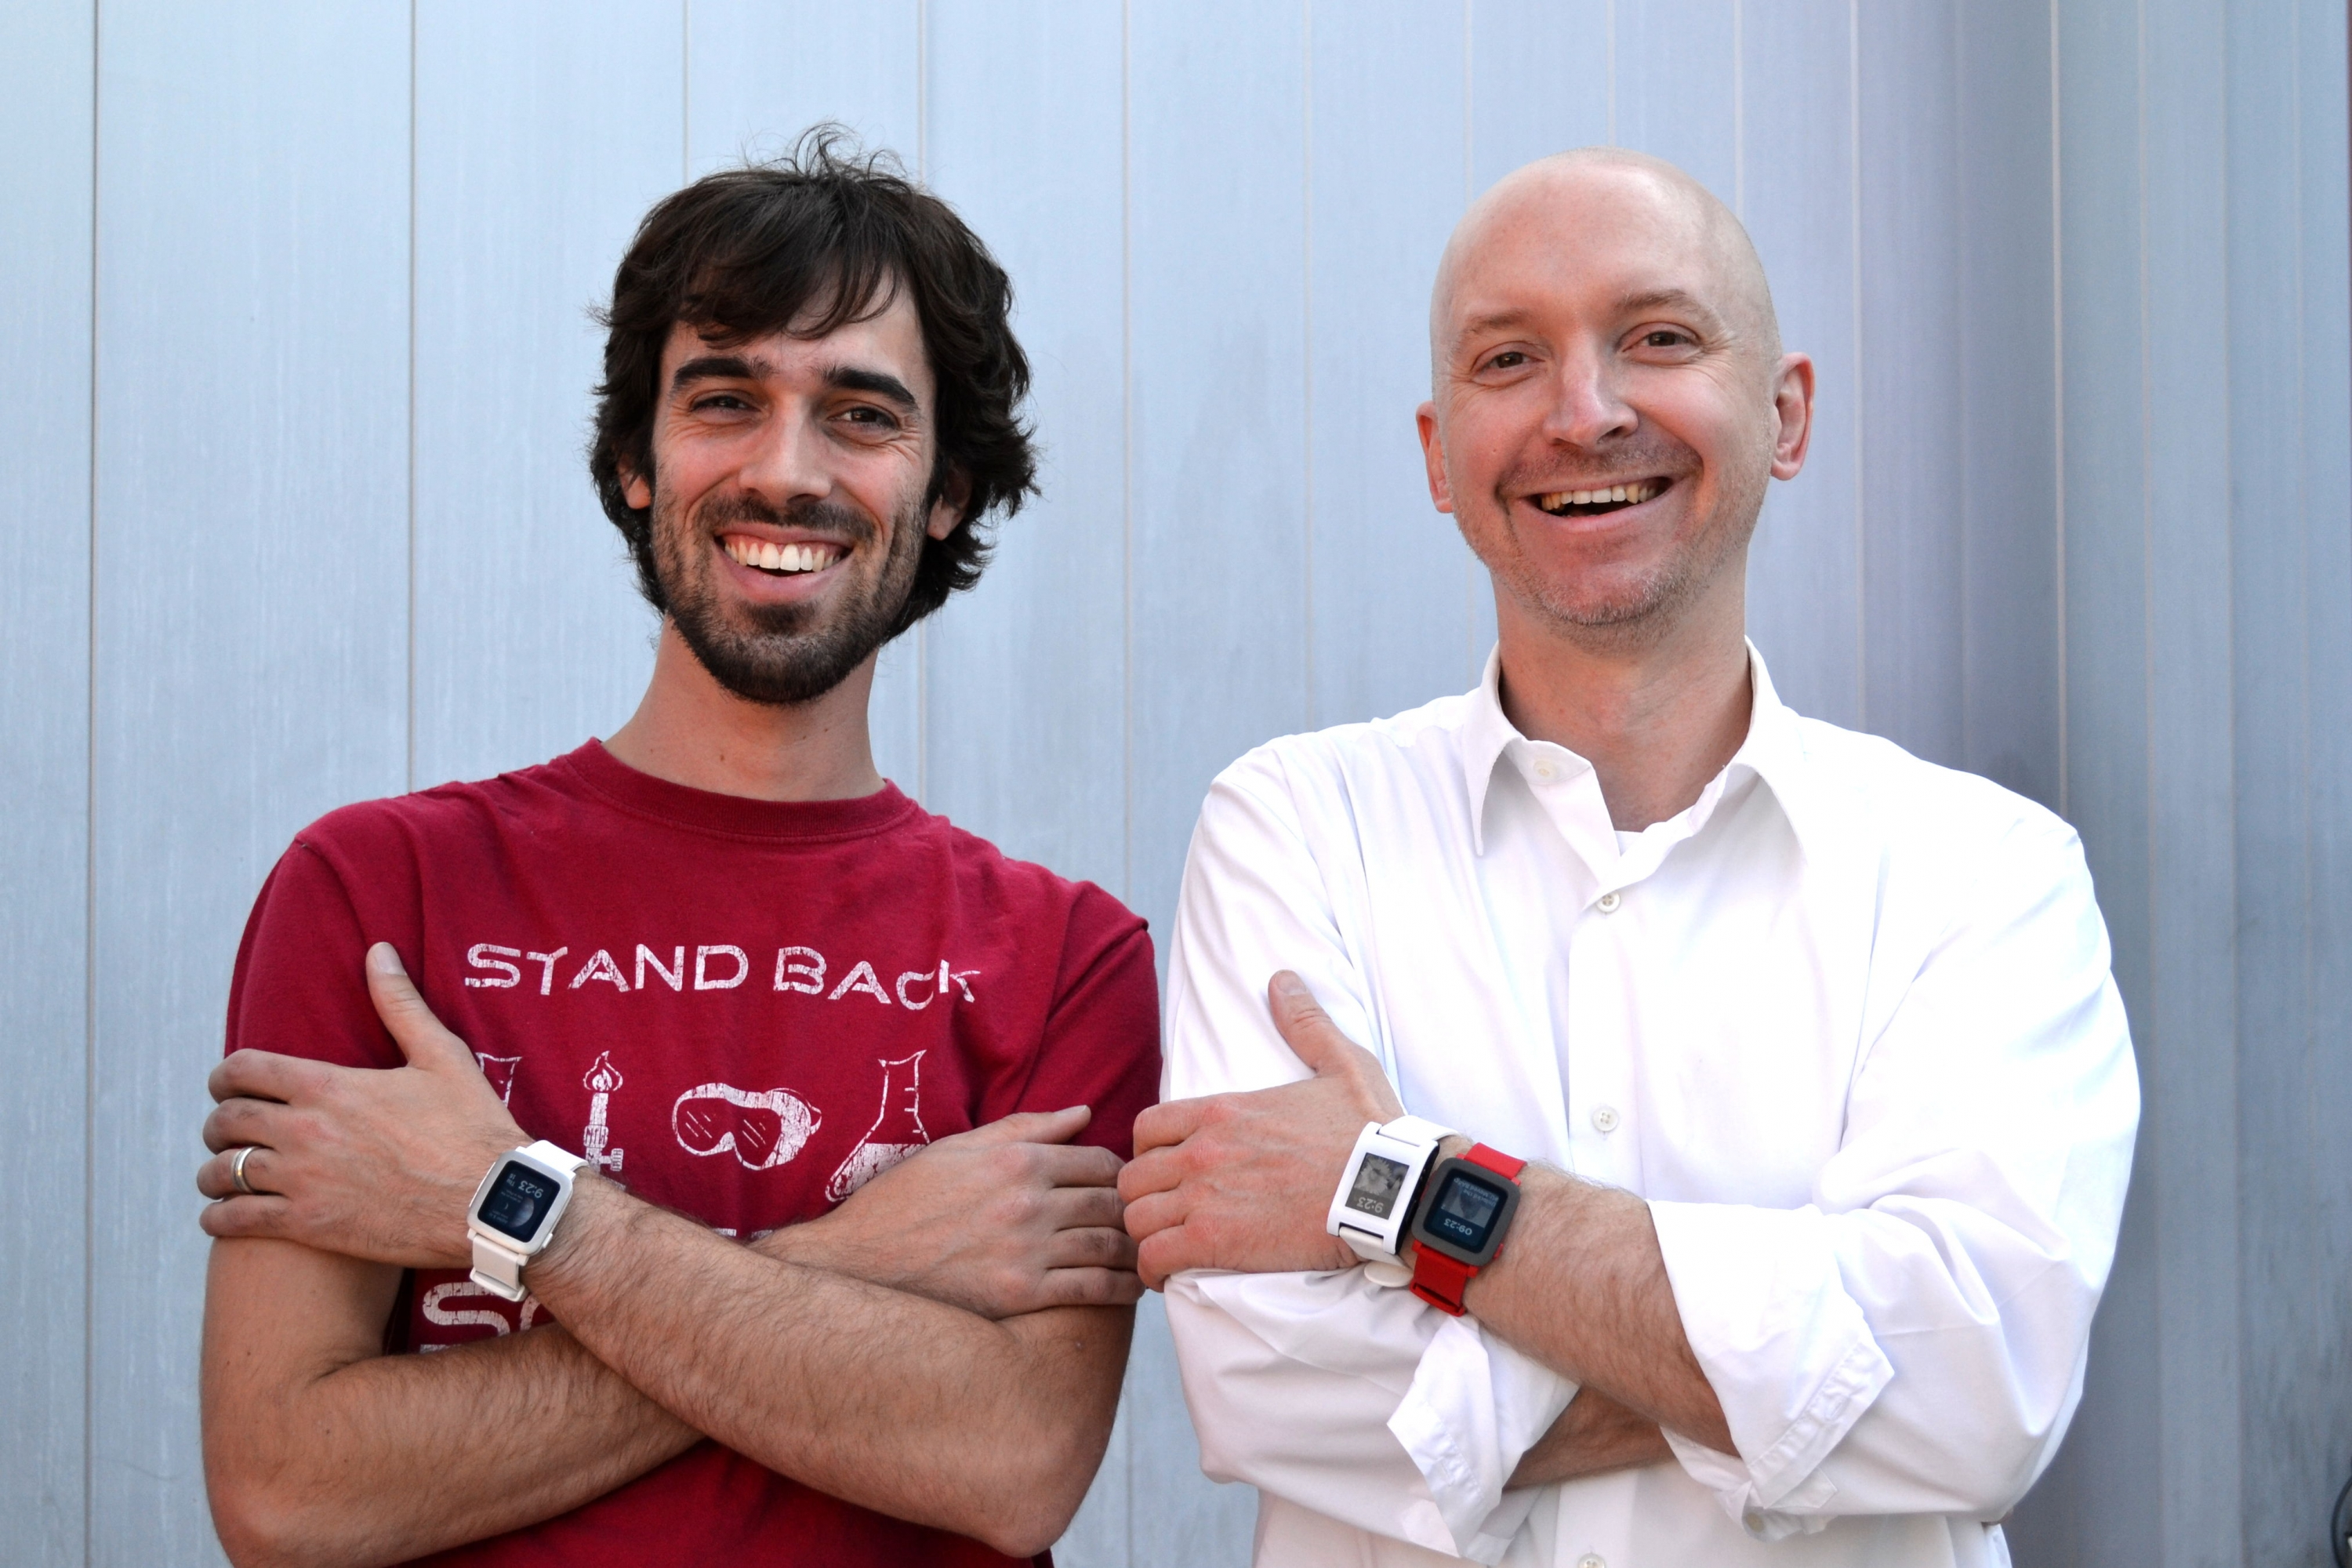 Michael Terry and Adam Fourney with Pebble smartwatches on wrists